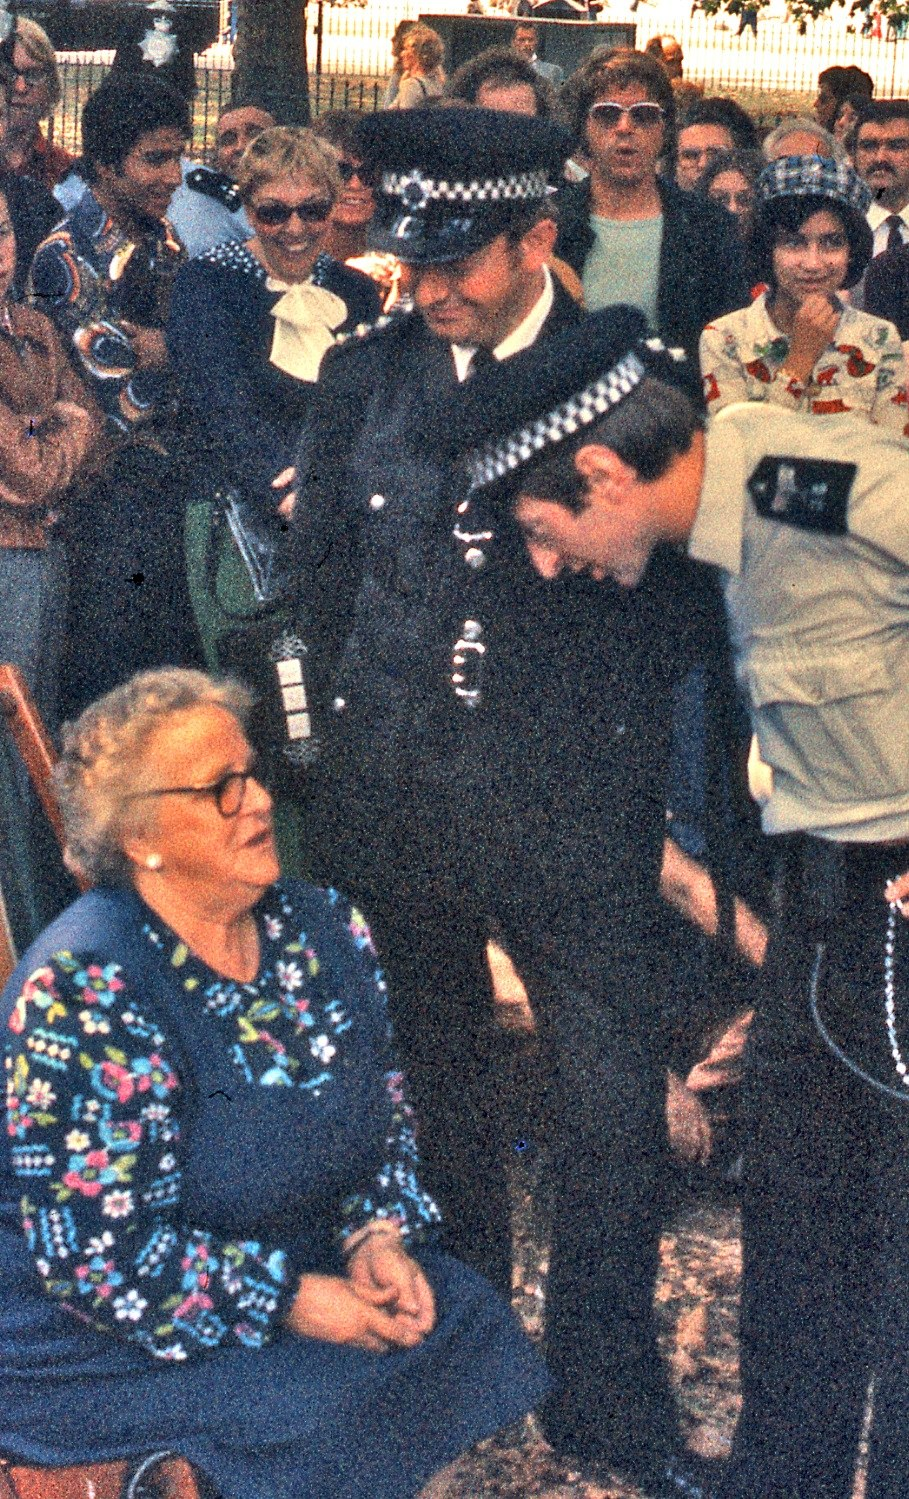 London police talk to seated woman, 1976